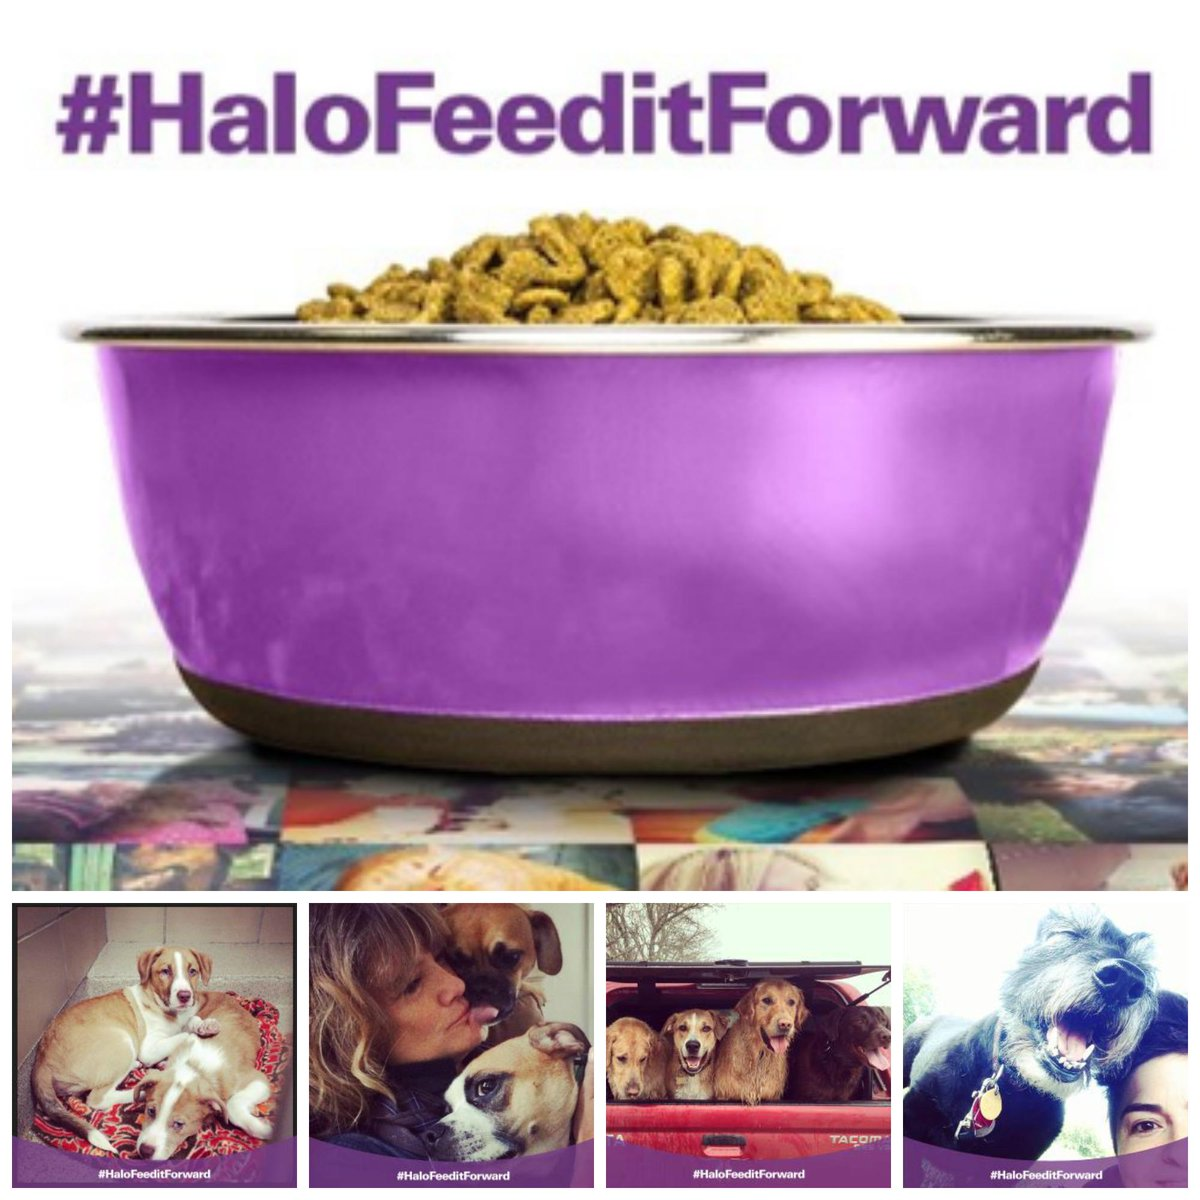 #Feed a #shelterpet for #FREE today by sharing a #pet picture with #HaloFeedItForward! #SocialGood http://t.co/9gpclYcdbk